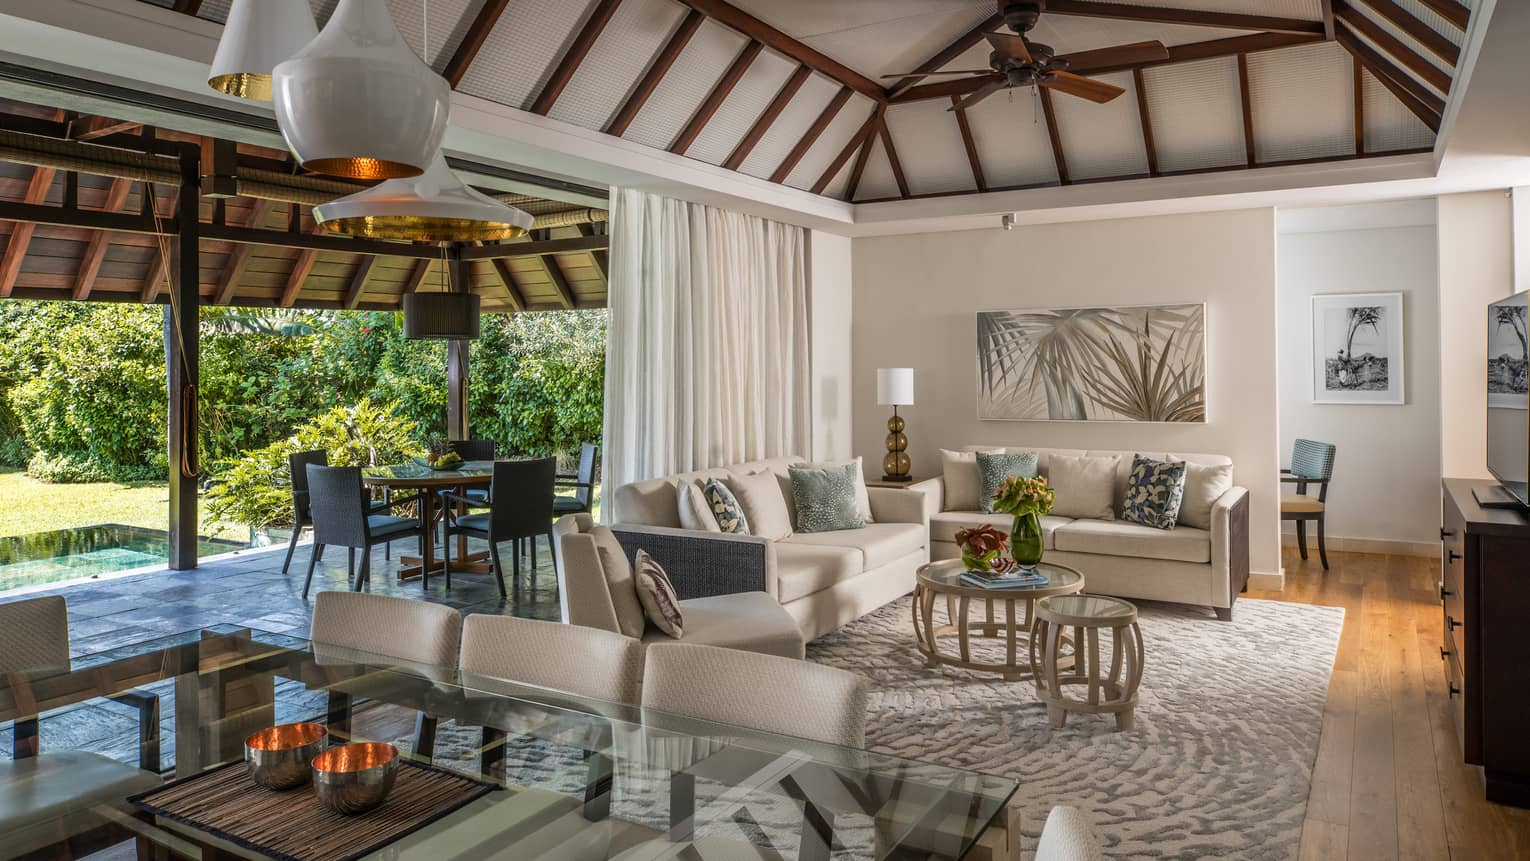 Garden Residence Villa large dining table, modern lights from cathedral ceilings, living room